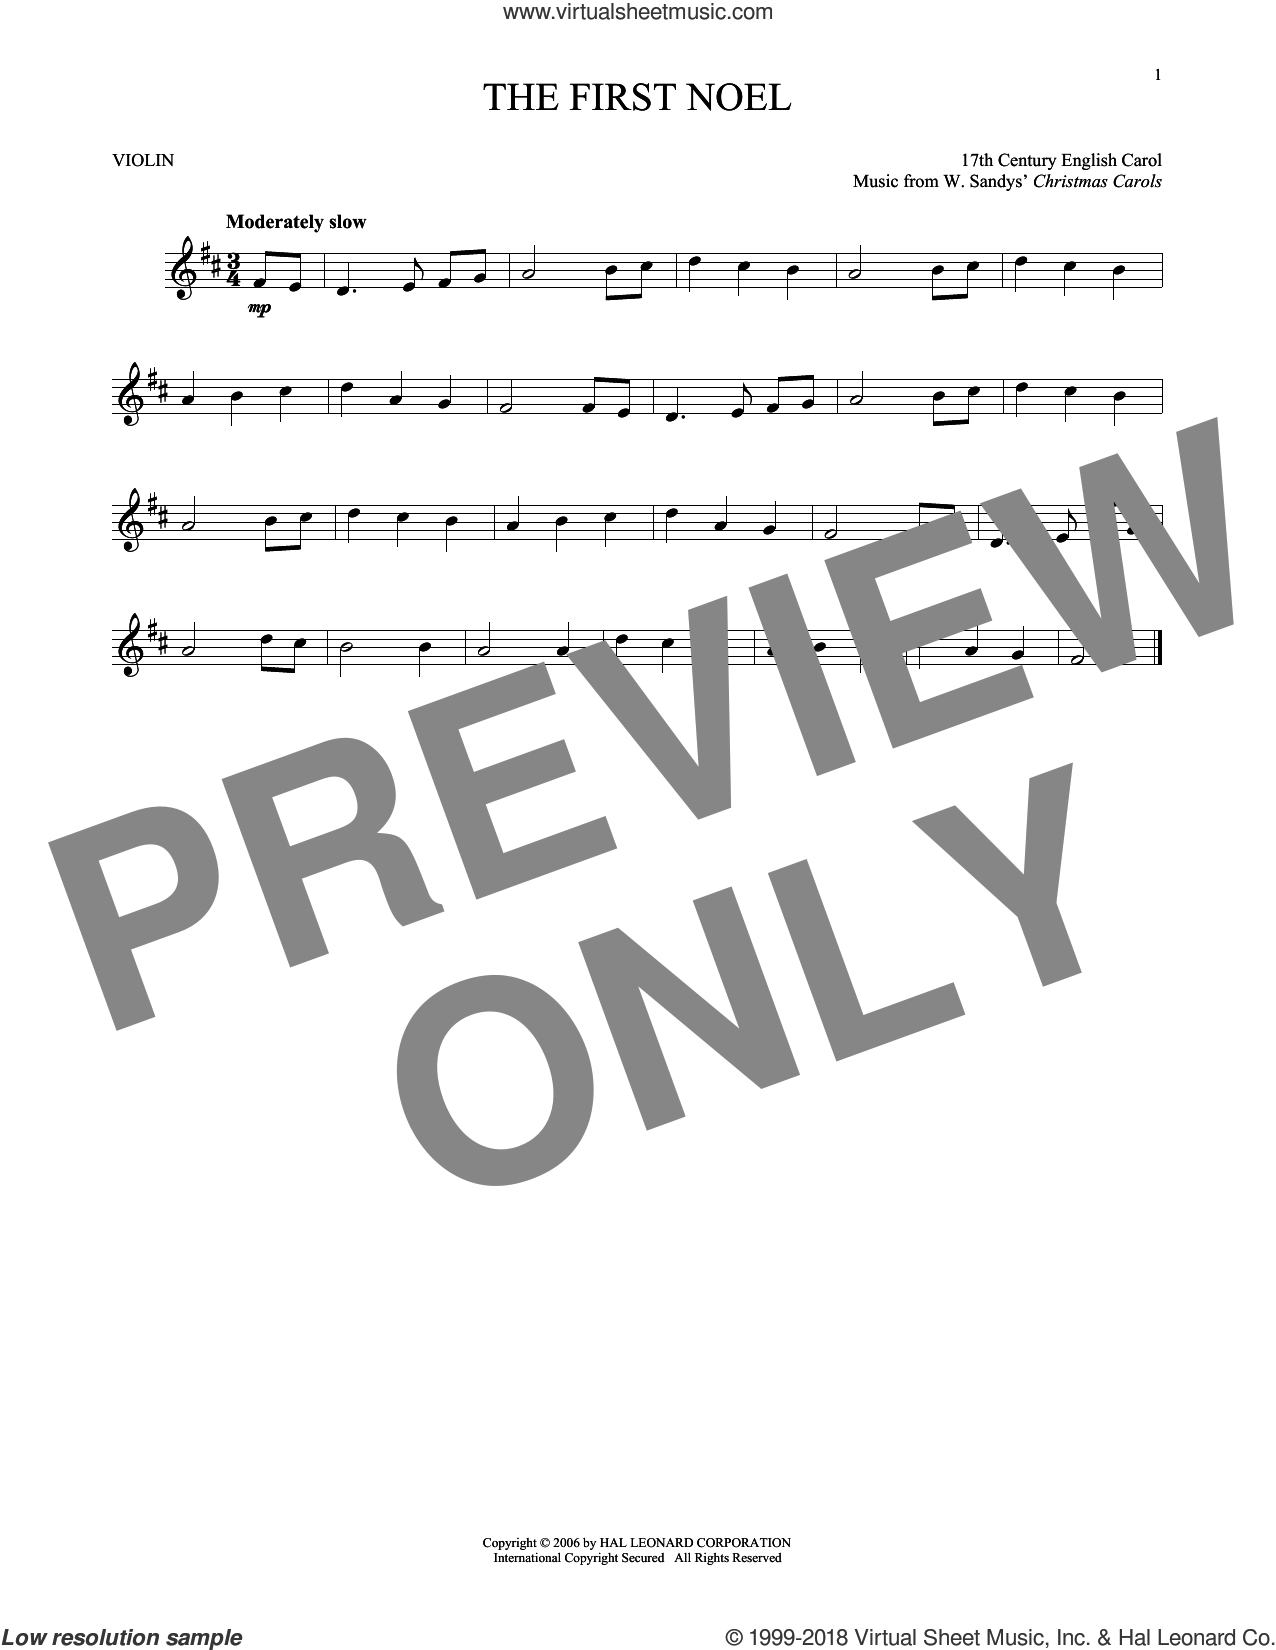 The First Noel sheet music for violin solo by W. Sandys' Christmas Carols and Miscellaneous, intermediate skill level